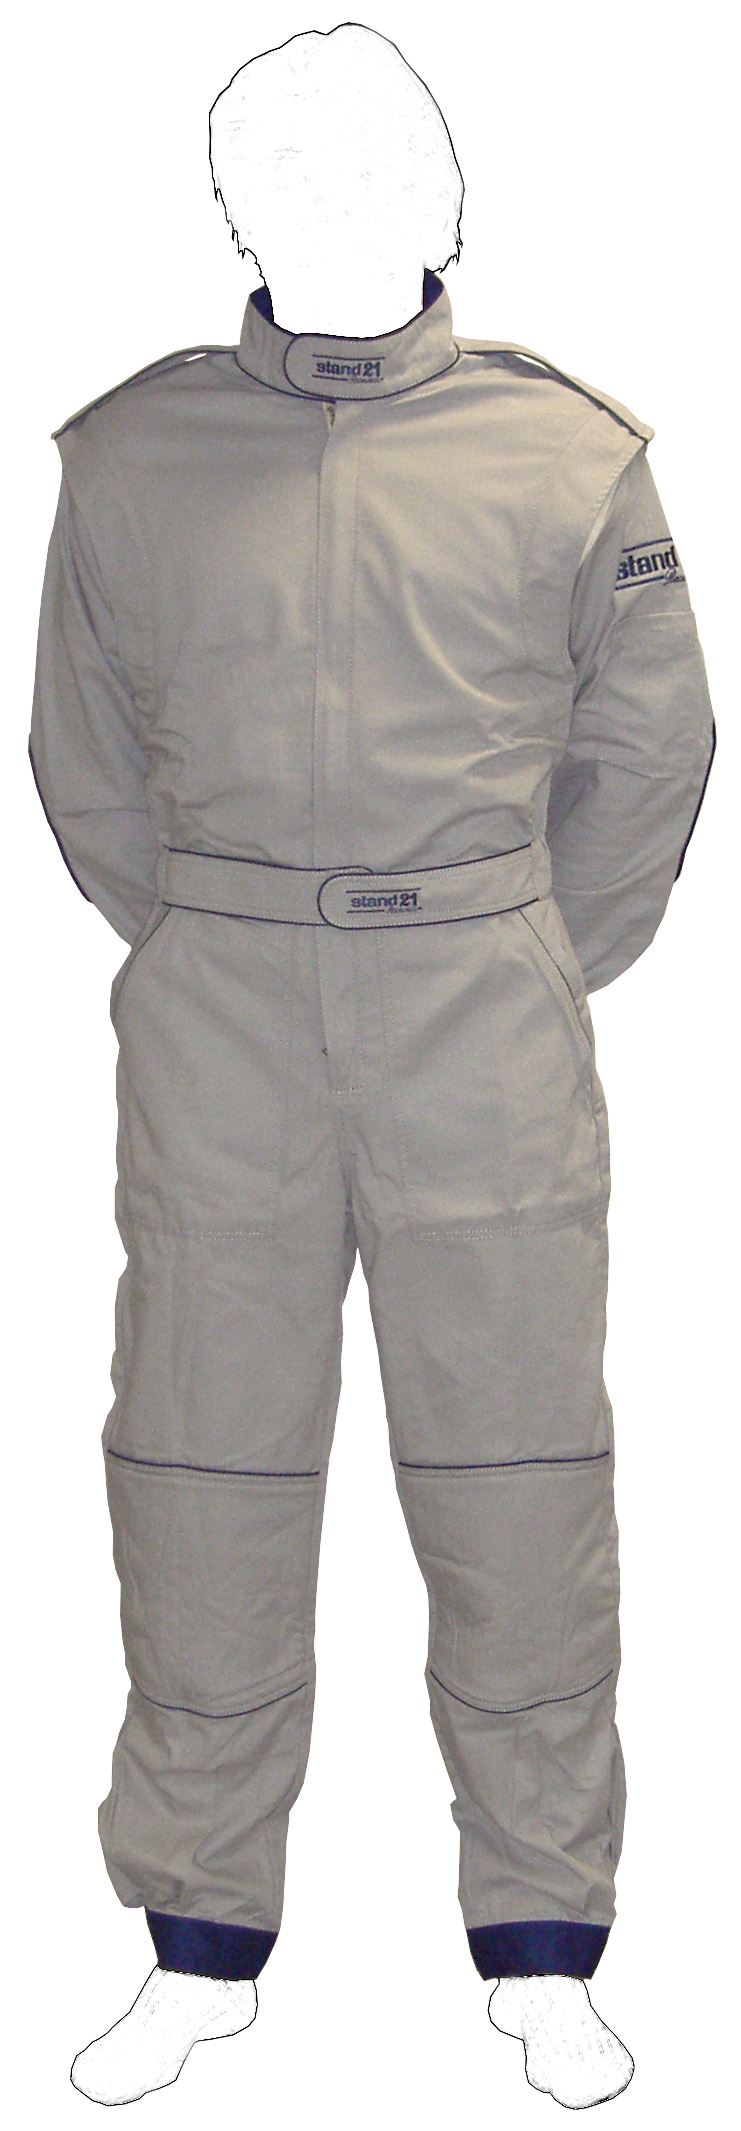 Stock grey with Navy blue piping K09 go-kart suit